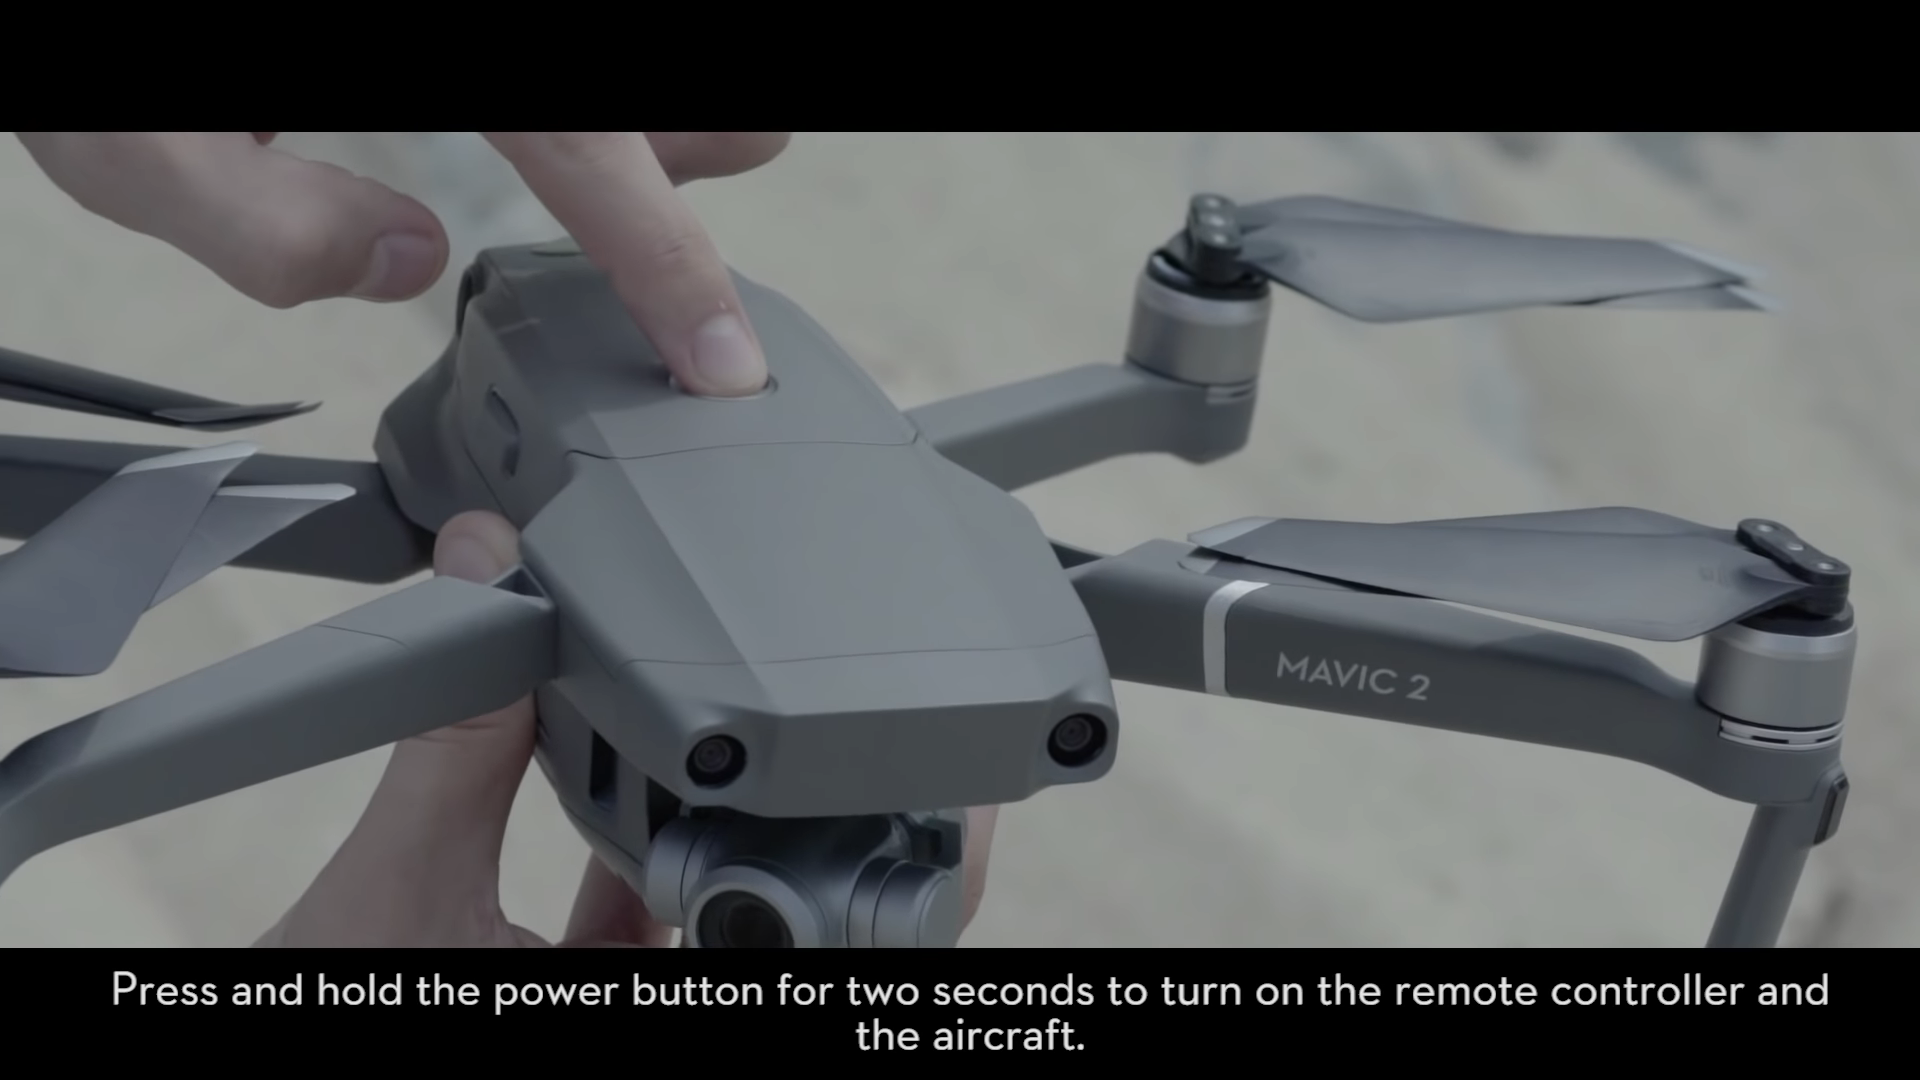 Turn on Mavic 2 drone by holding power button